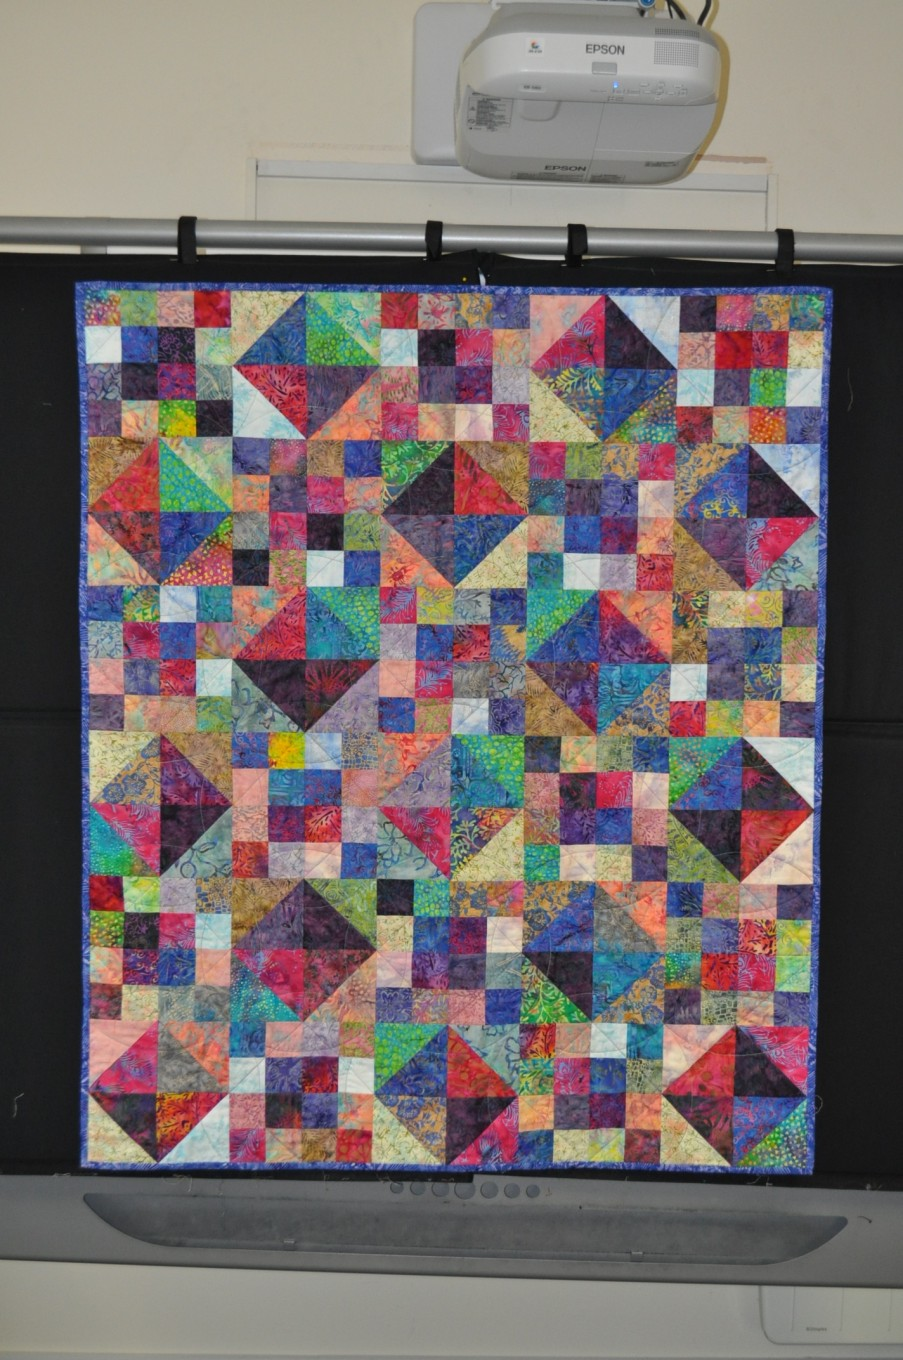 Margaret B. from Scrap quilt Sensation by Katherine Guerrier